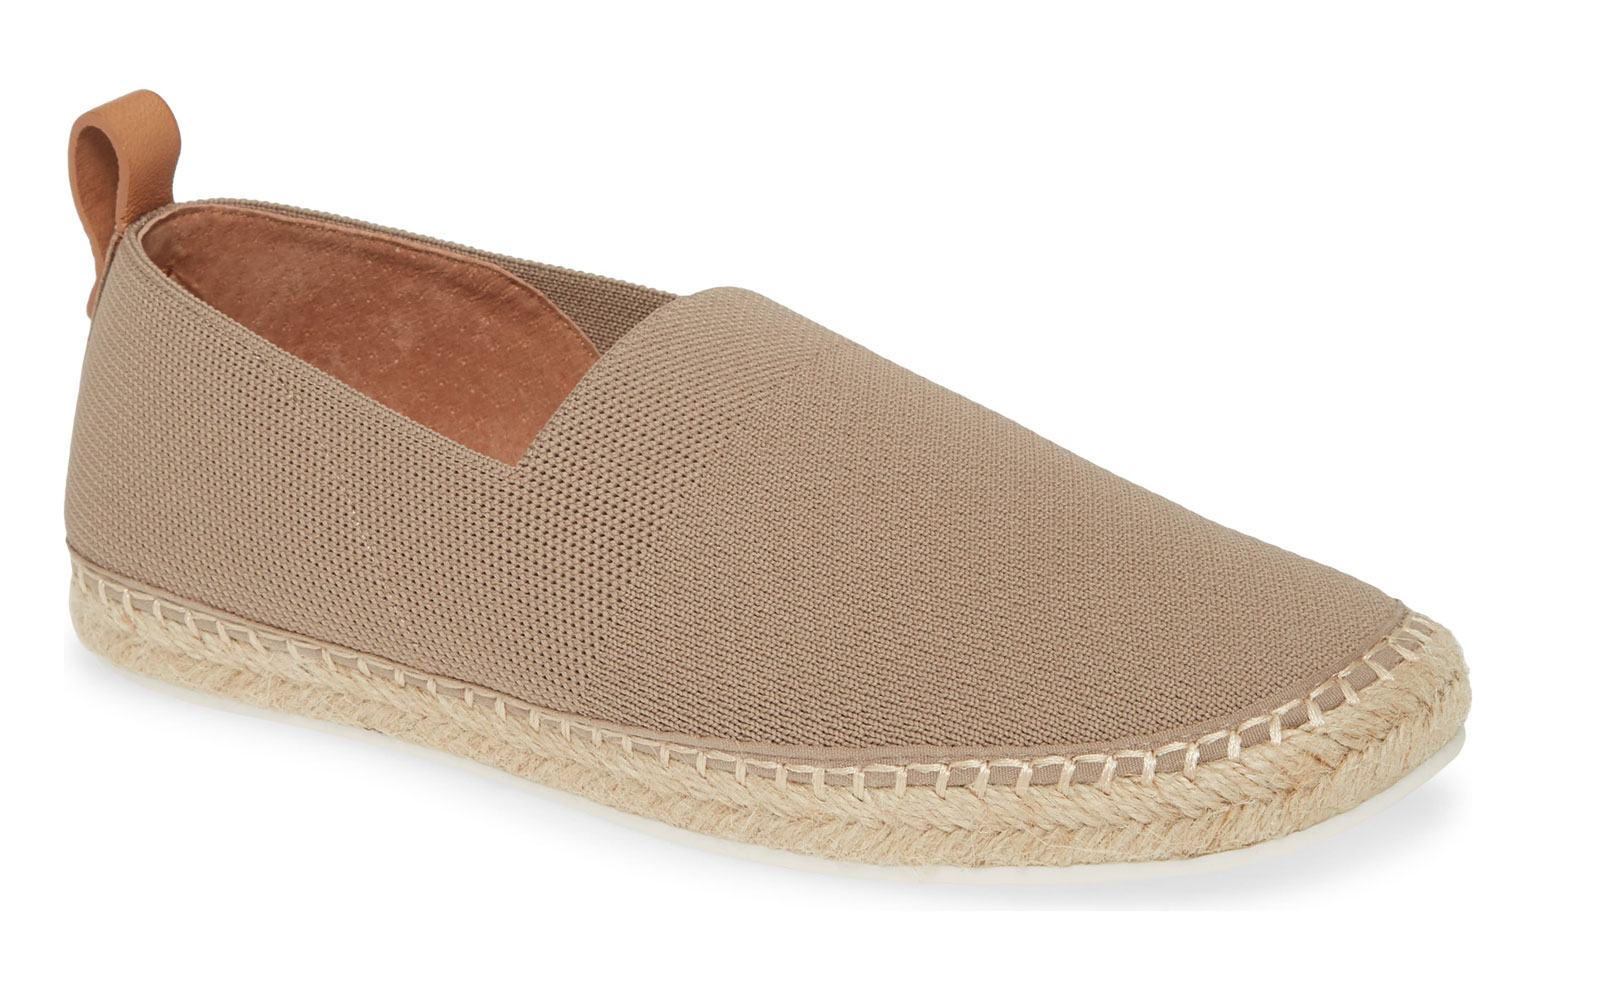 Tan slip on espadrilles